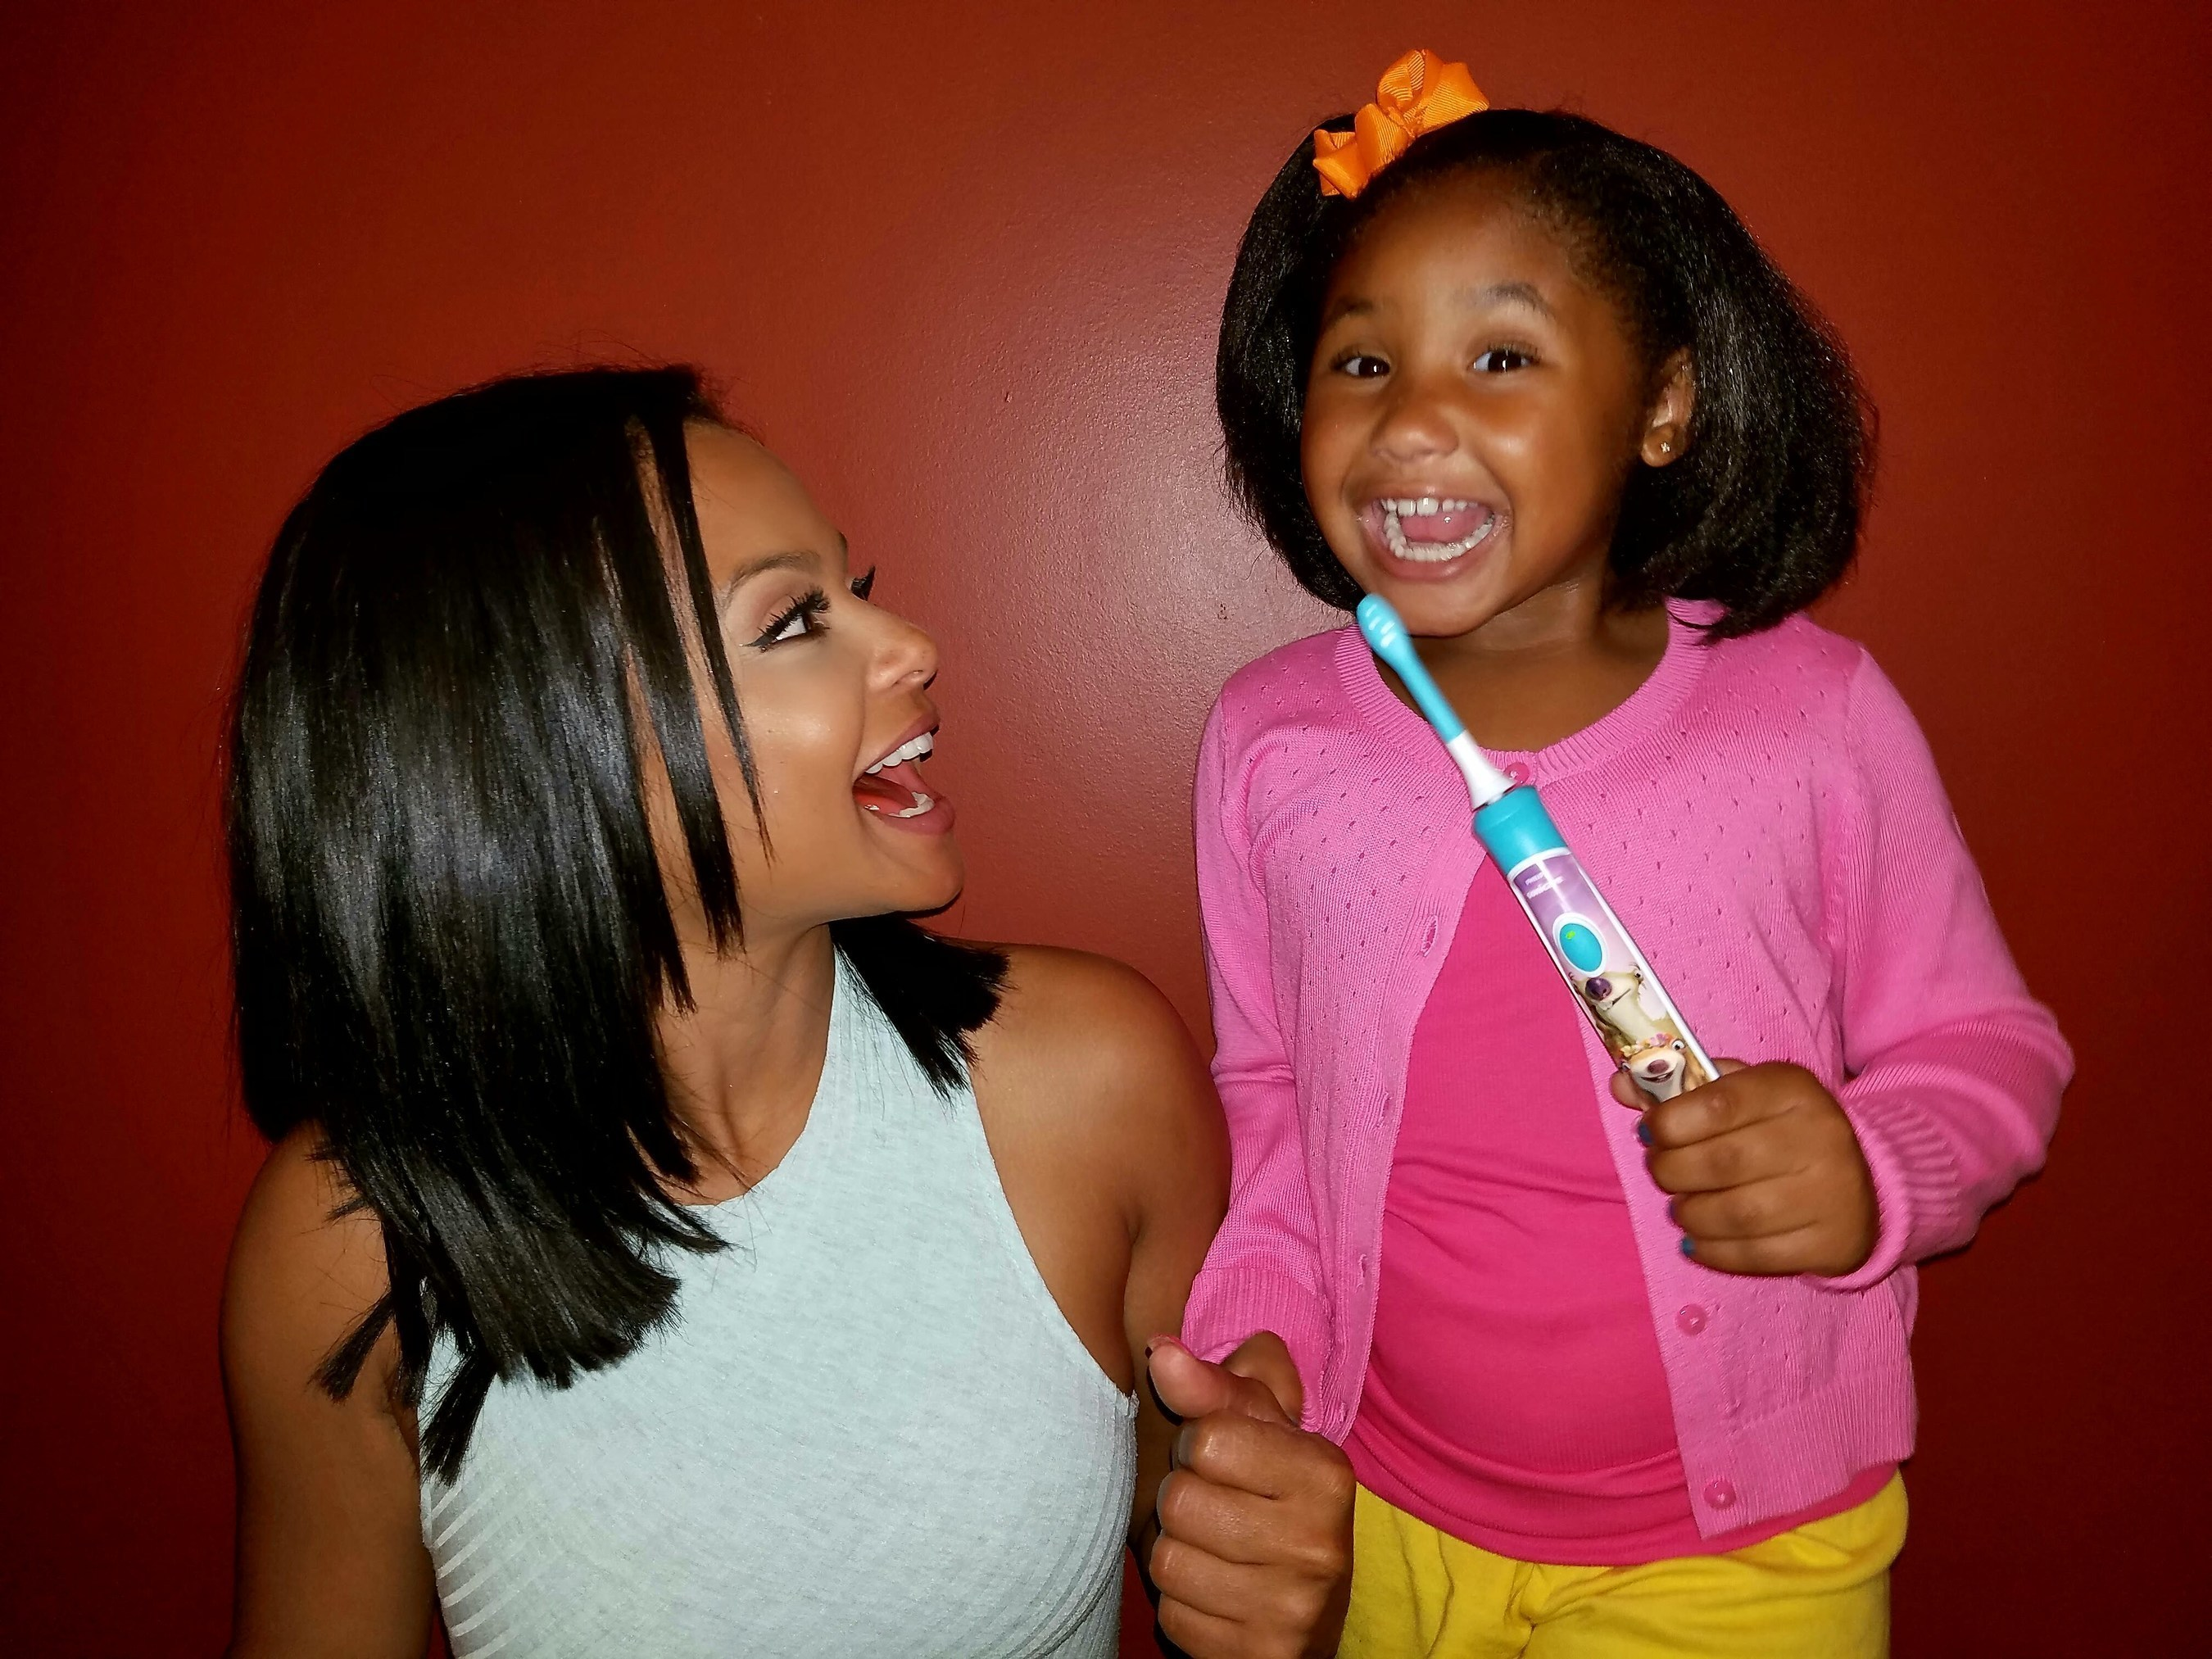 #IceAge: #CollisionCourse hits theaters on July 22 and Violet is getting ready by brushing with her Ice Age Philips Sonicare For Kids & Sparkly app every day. I also love it because I know she's doing a good job brushing her teeth! #littlesmiles #sponsored